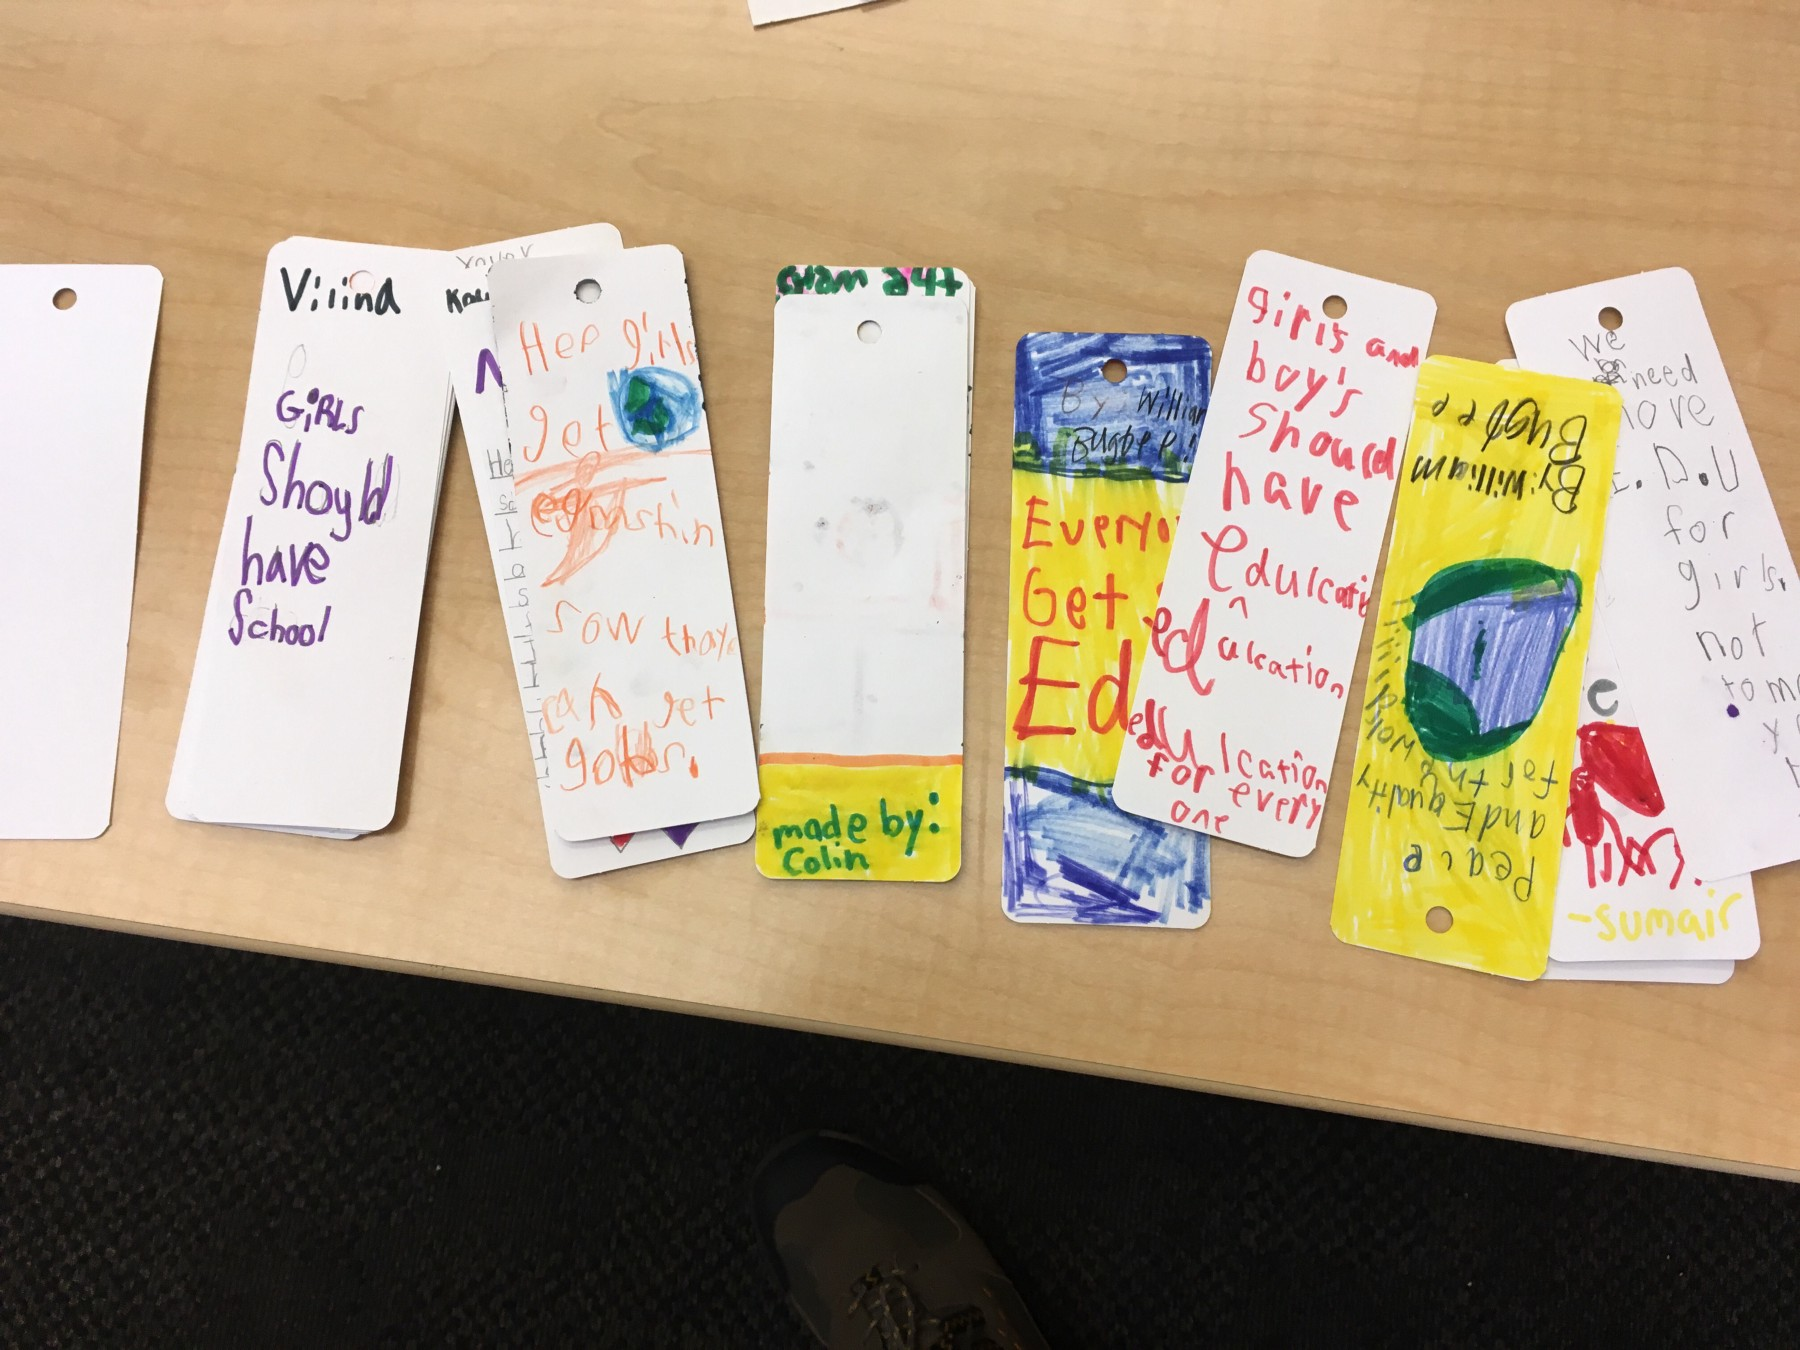 A sampling of the bookmark submissions. (Courtesy of Anya Sen)